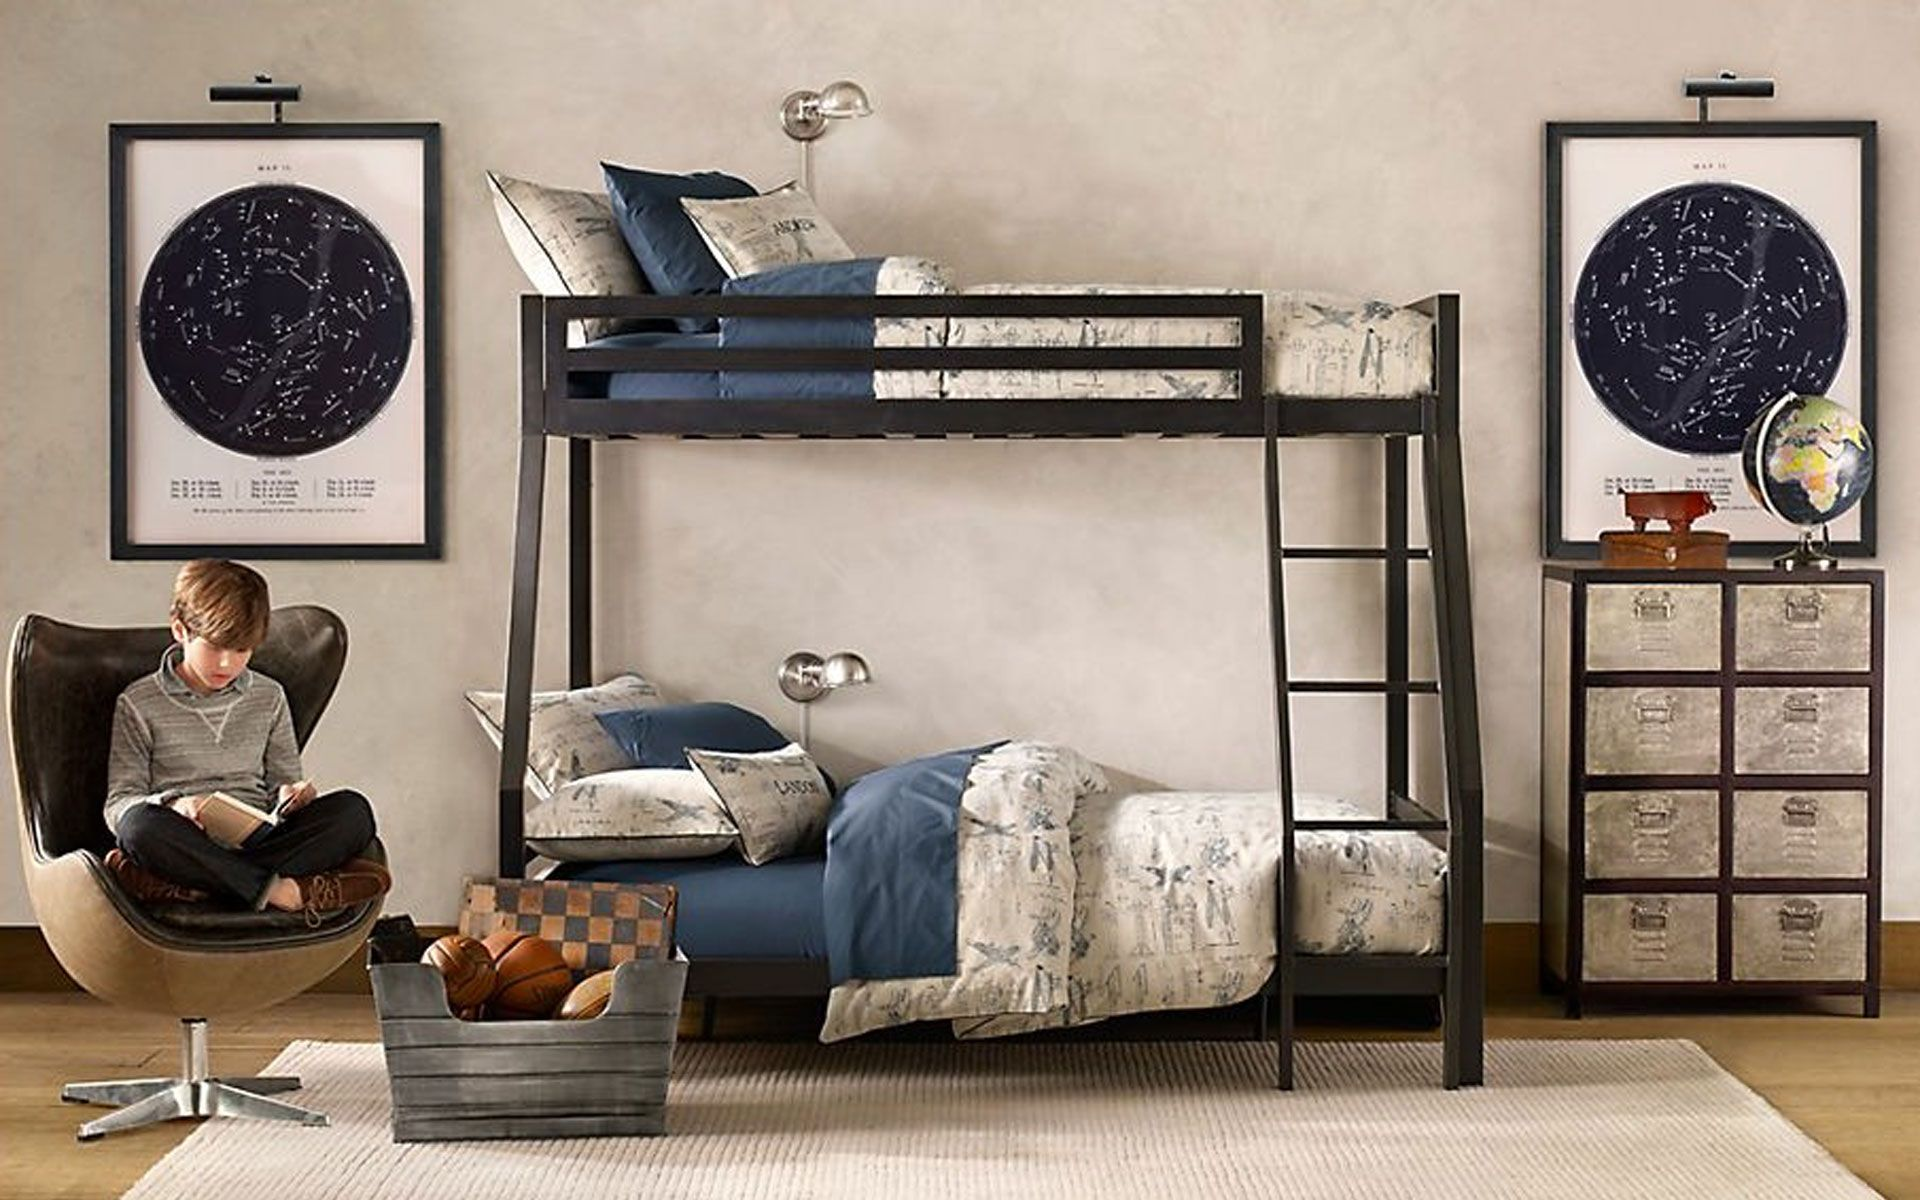 Teenage boys bedroom furniture - Galvanized Metal Furniture For A Teen Room Ideas Inspiration Design Exquisite Boys Room Ideas